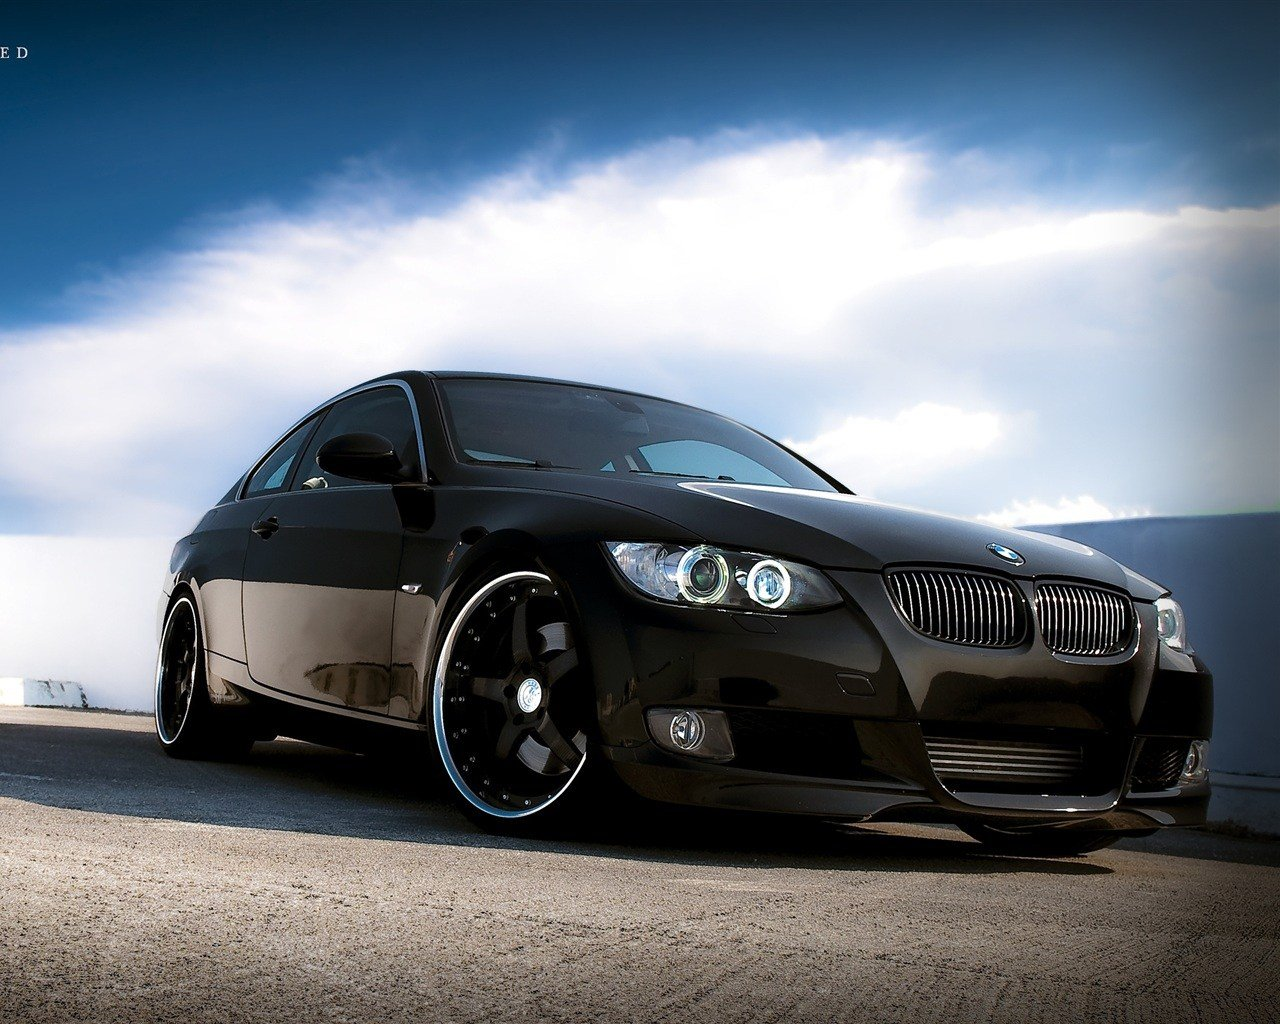 Latest Wallpaper Bmw Car Black Color 2560X1600 Hd Picture Image Free Download